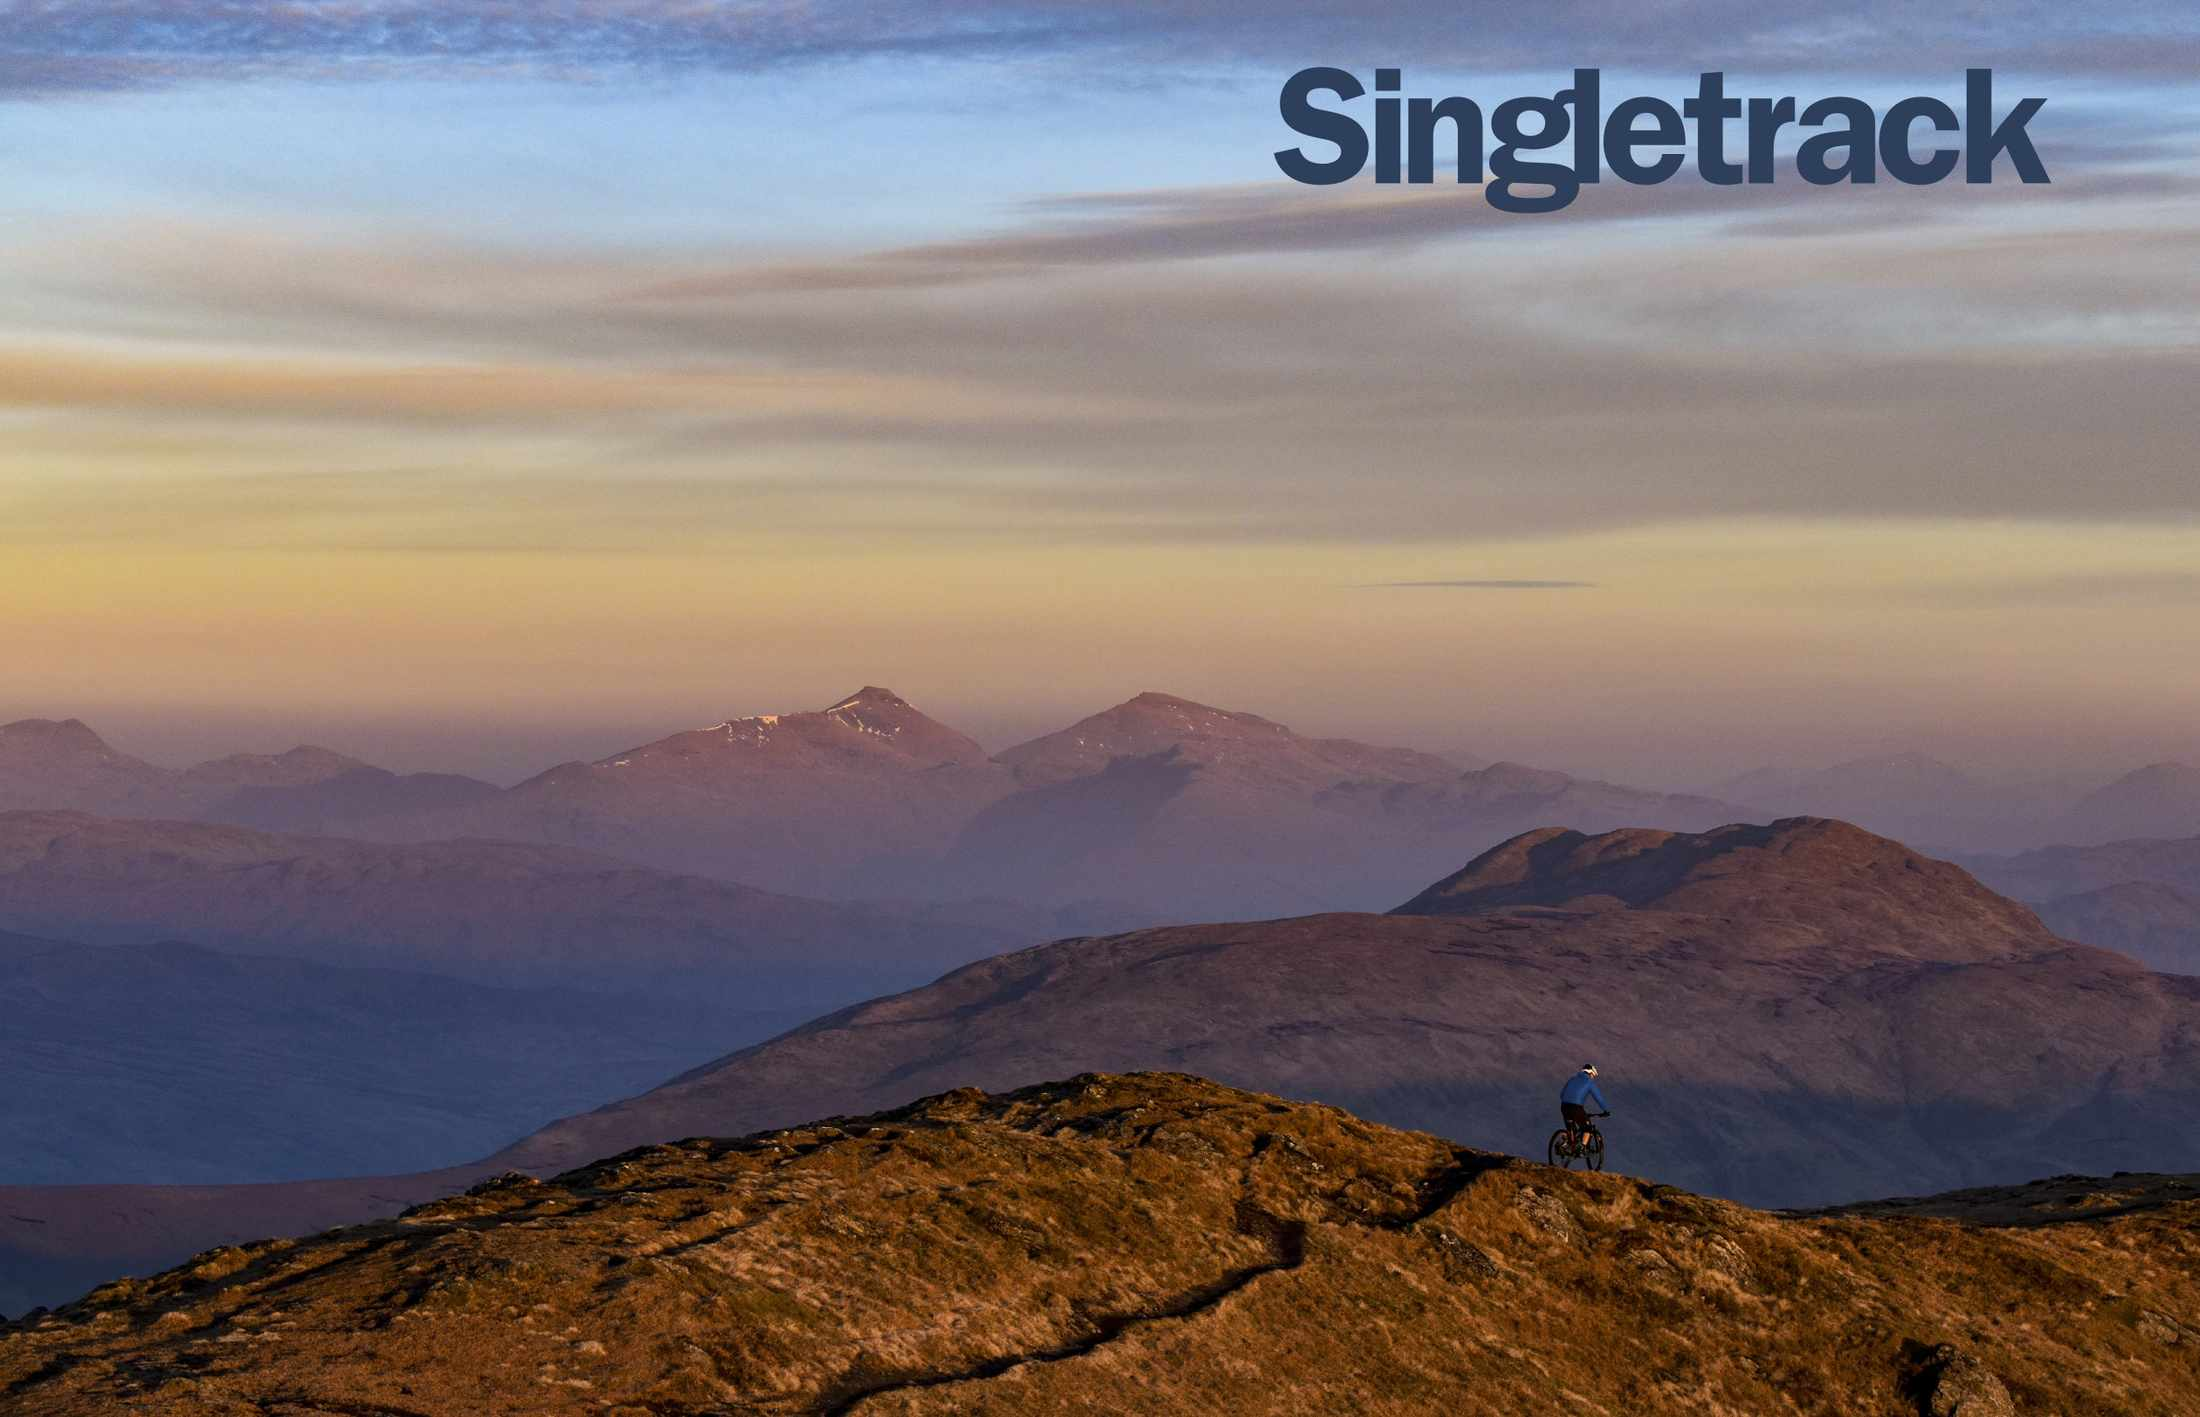 singletrack issue 127 cover landscape david gould